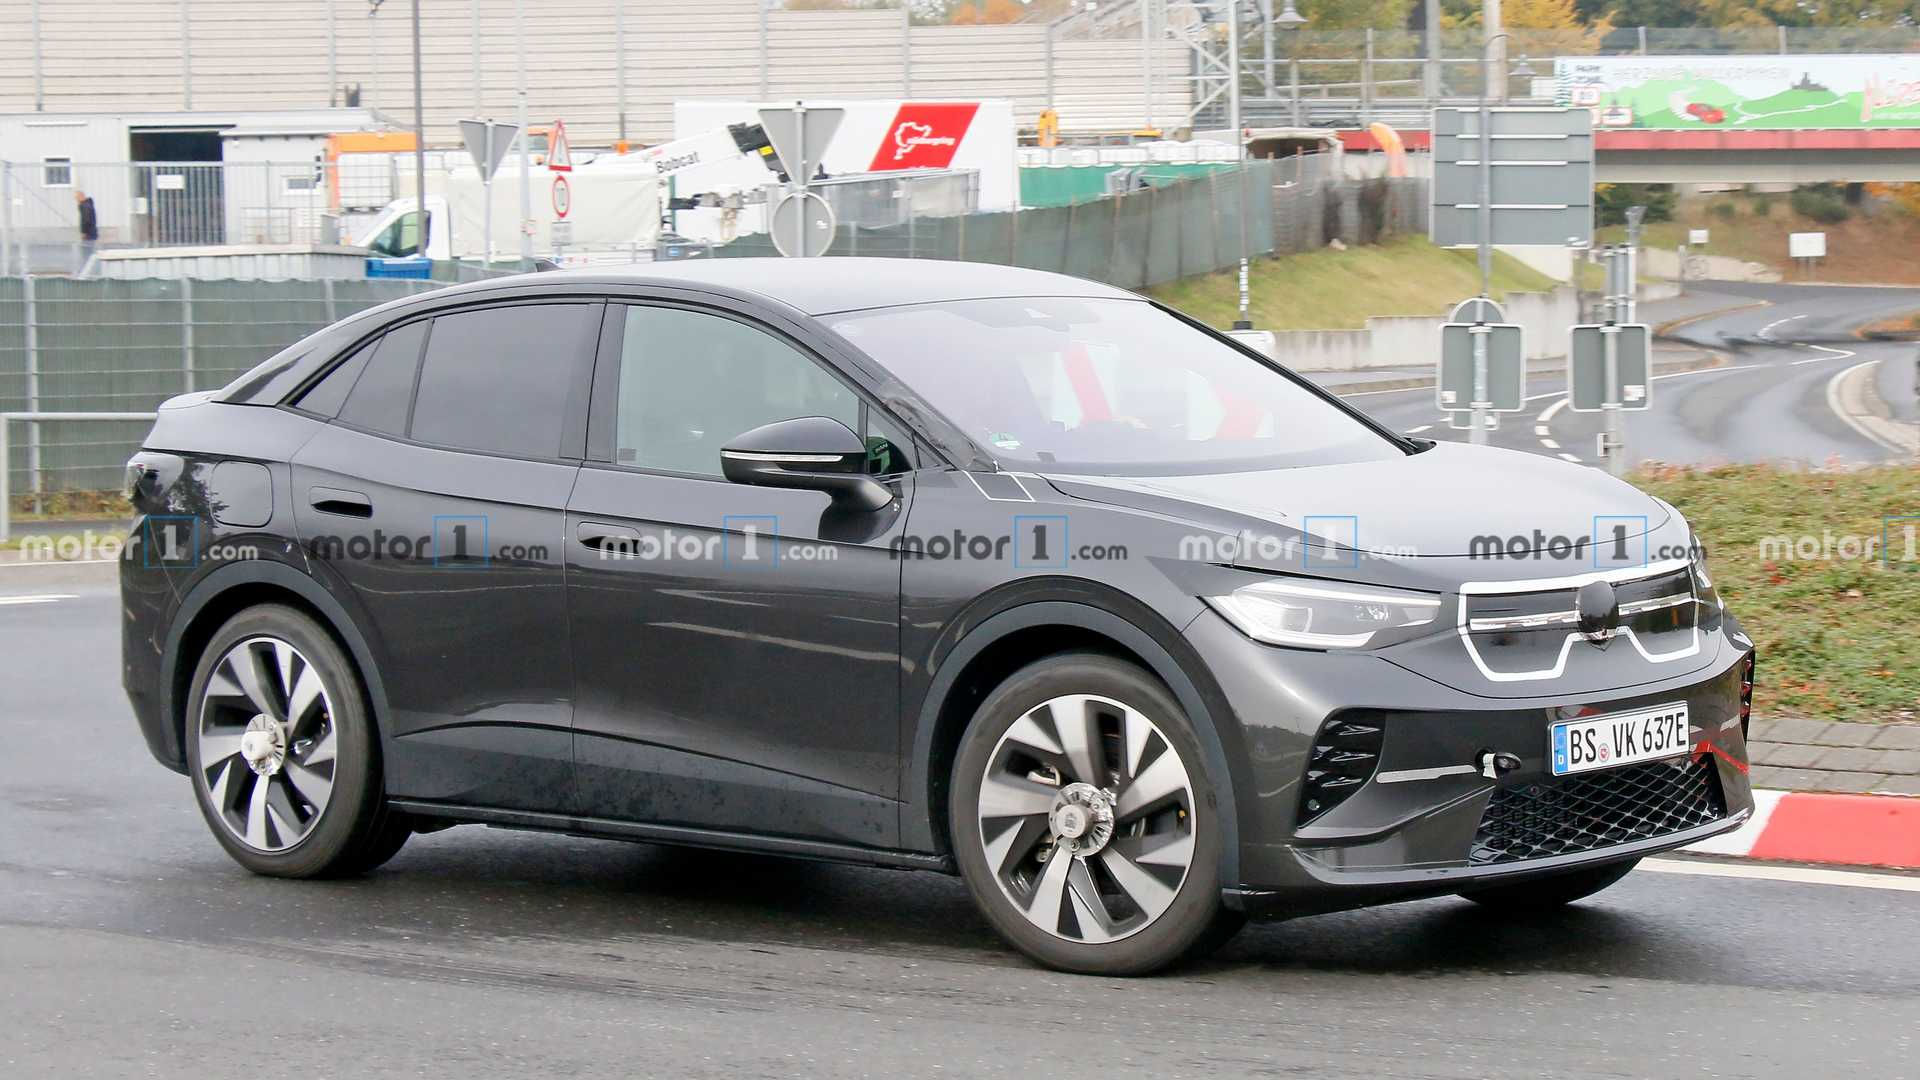 VW ID.5 Spied At The Nurburgring Looking Ready For Production